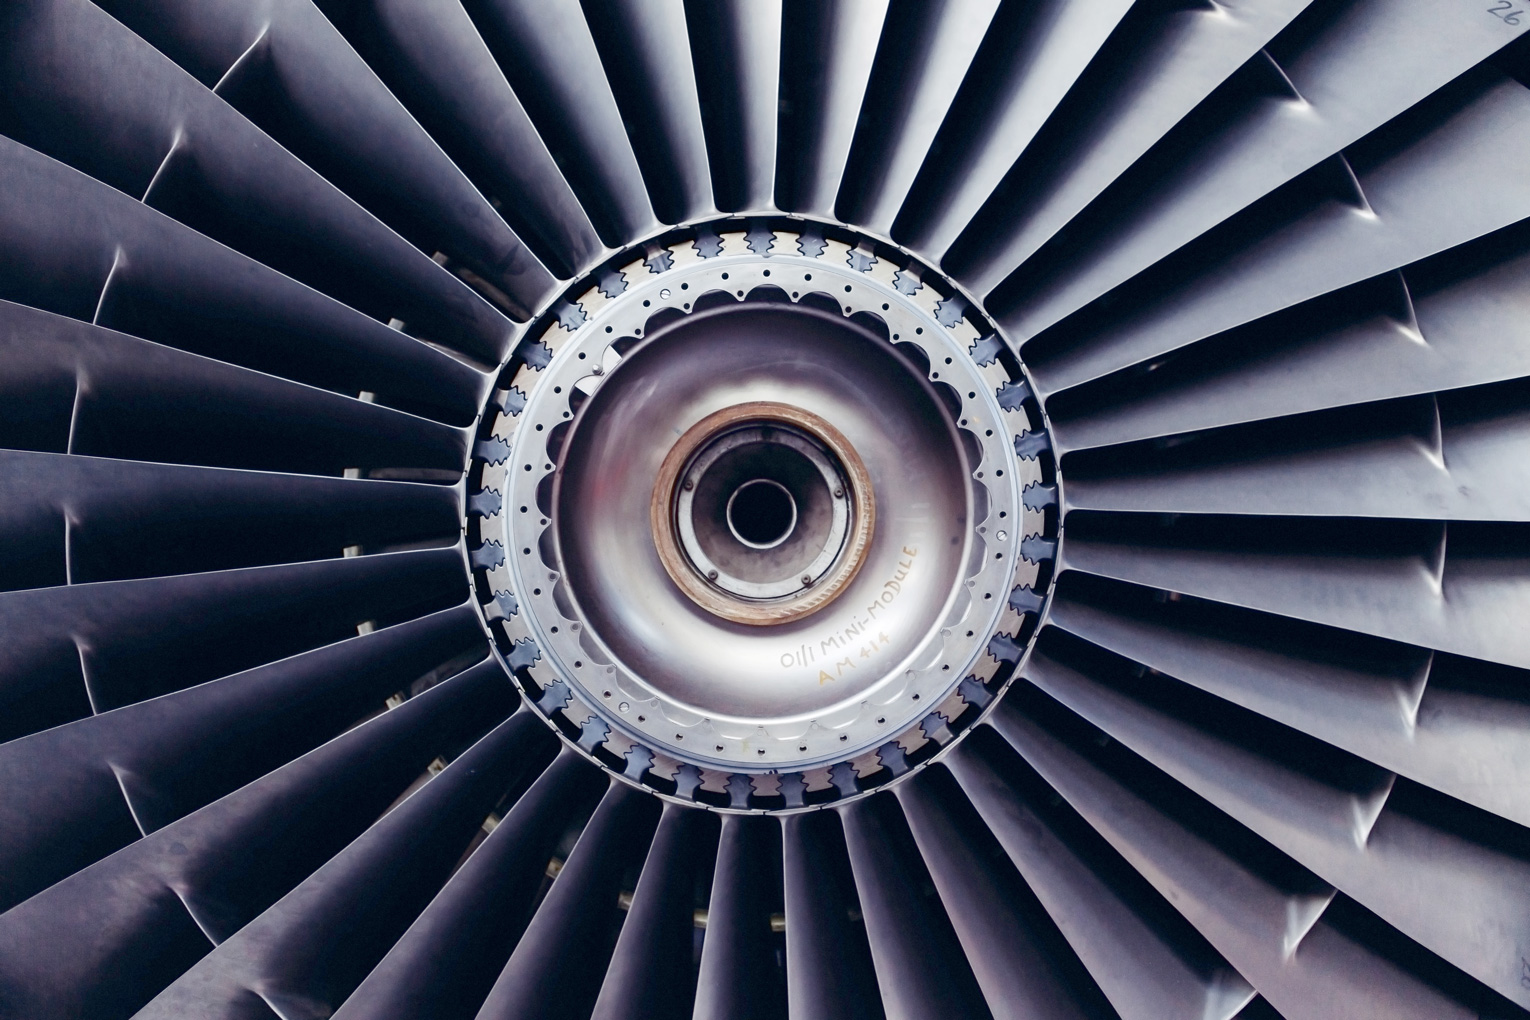 Installation, dismantling and repair of hydroturbines and turbines